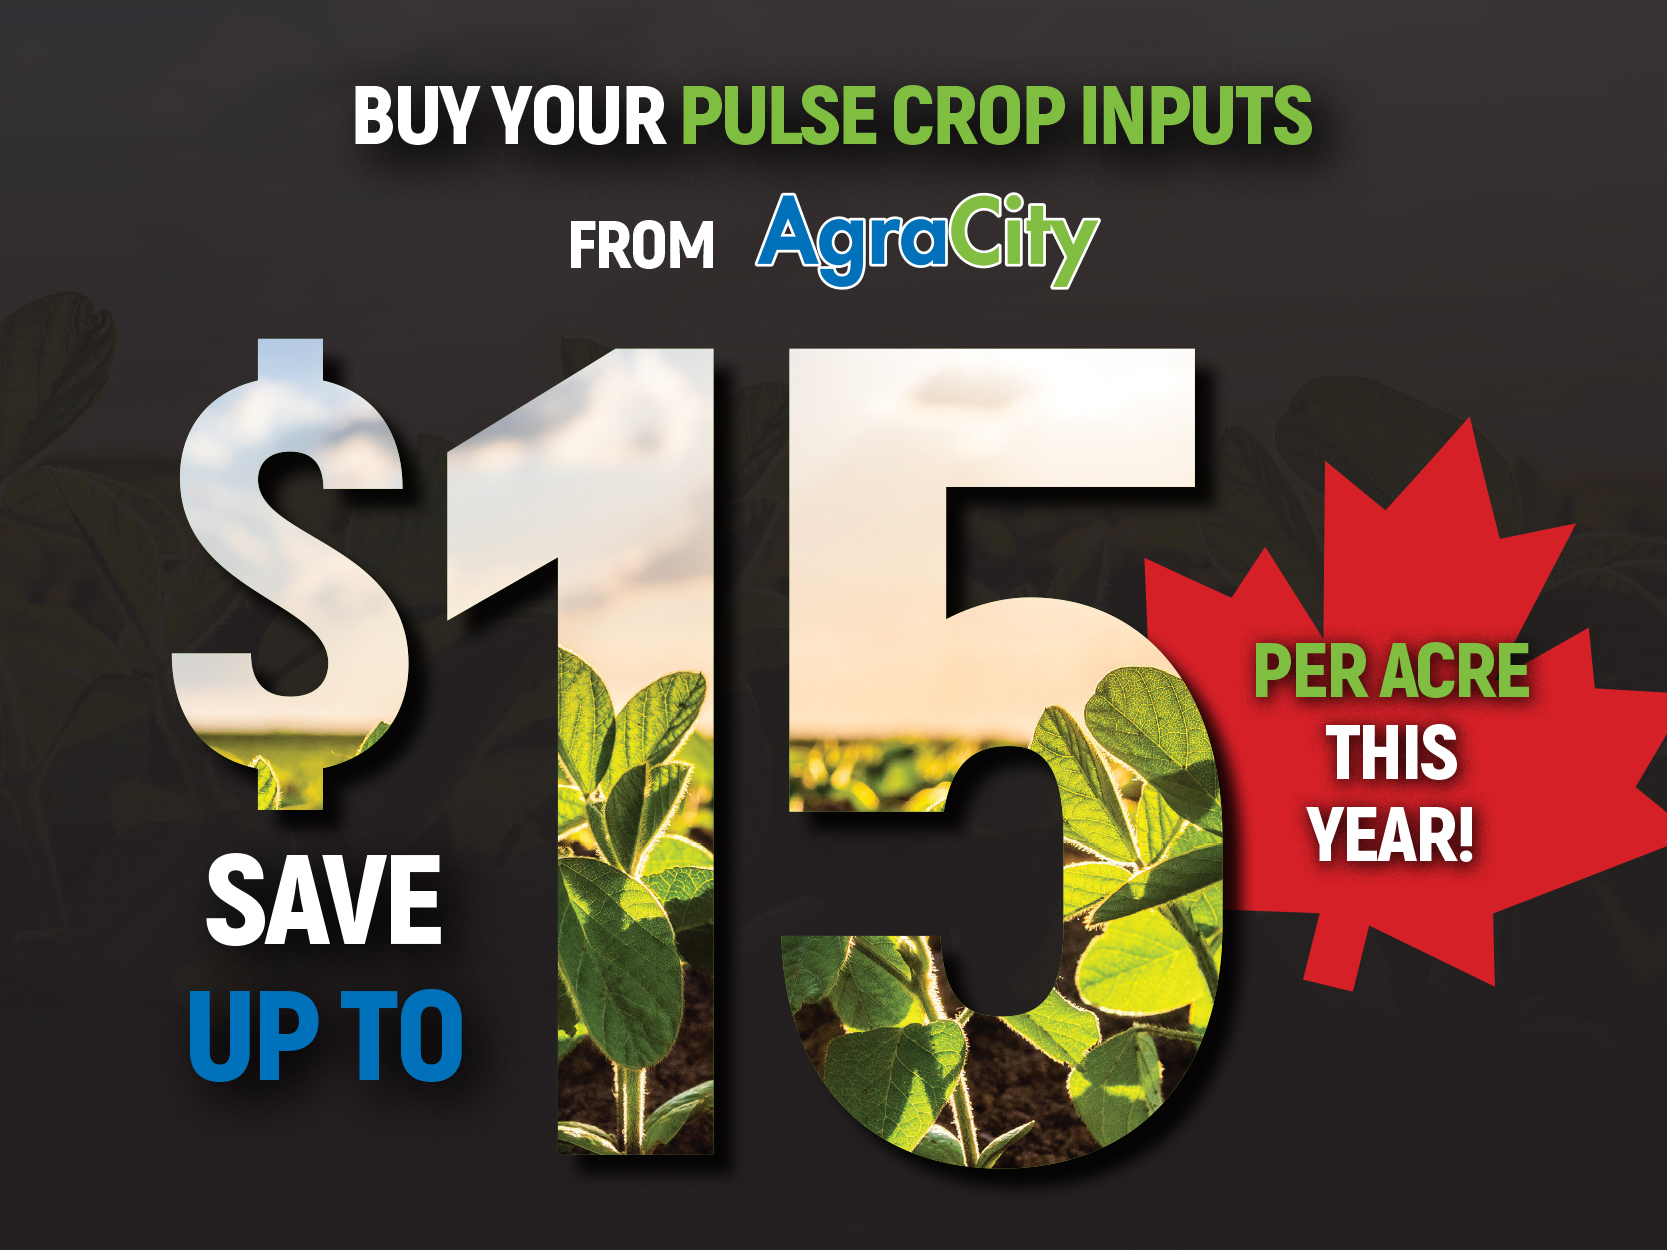 Buy Your Pulse Crop Inputs from AgriCity